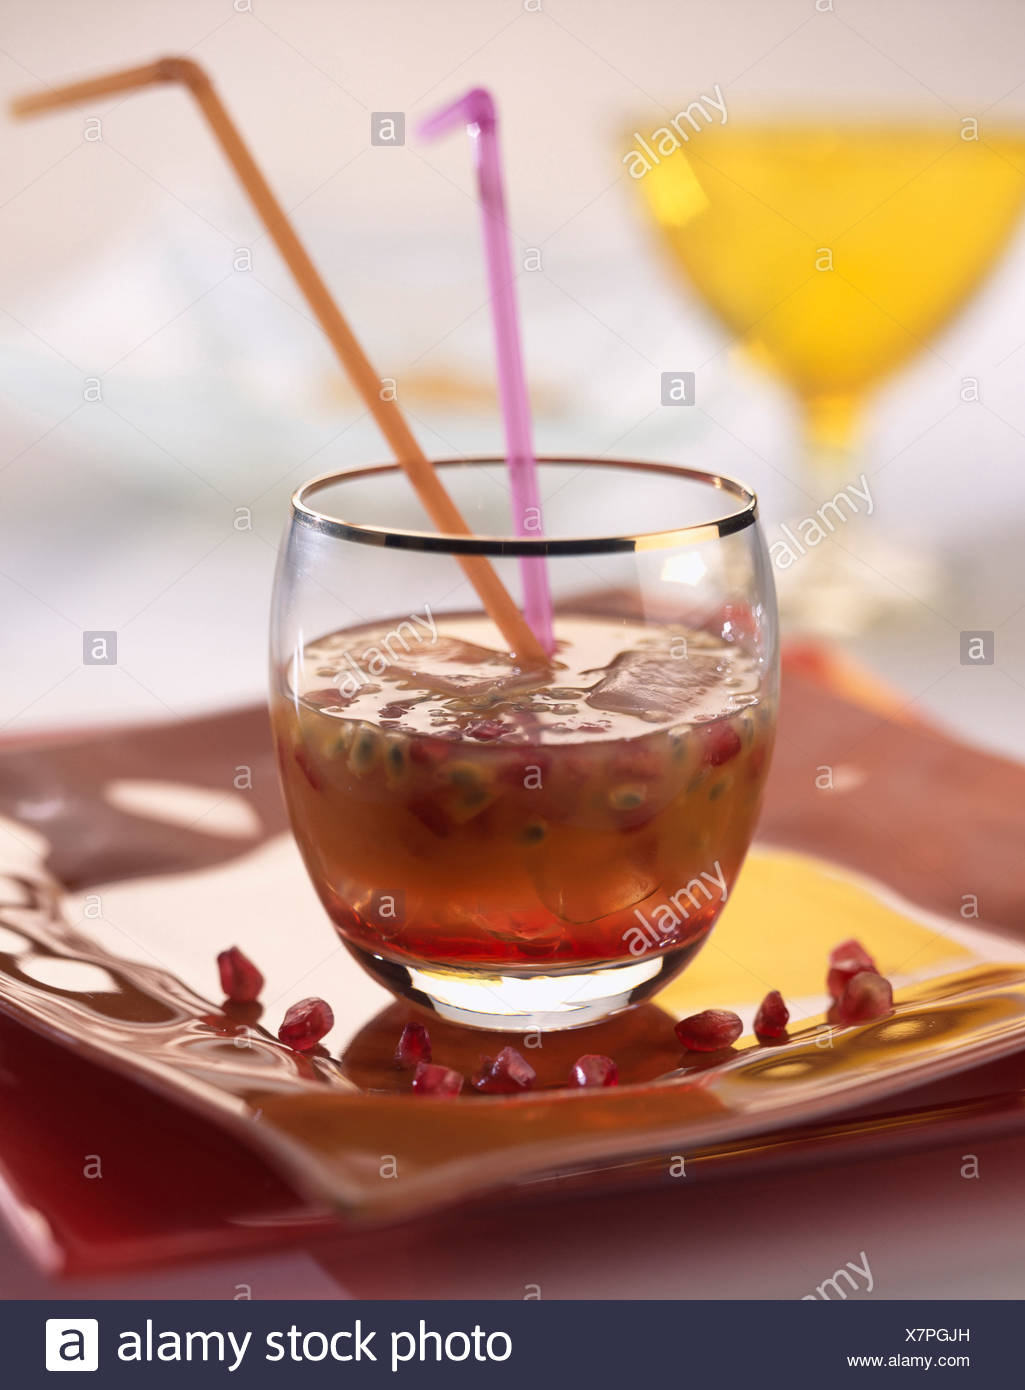 Non-alcoholic cocktail - Stock Image